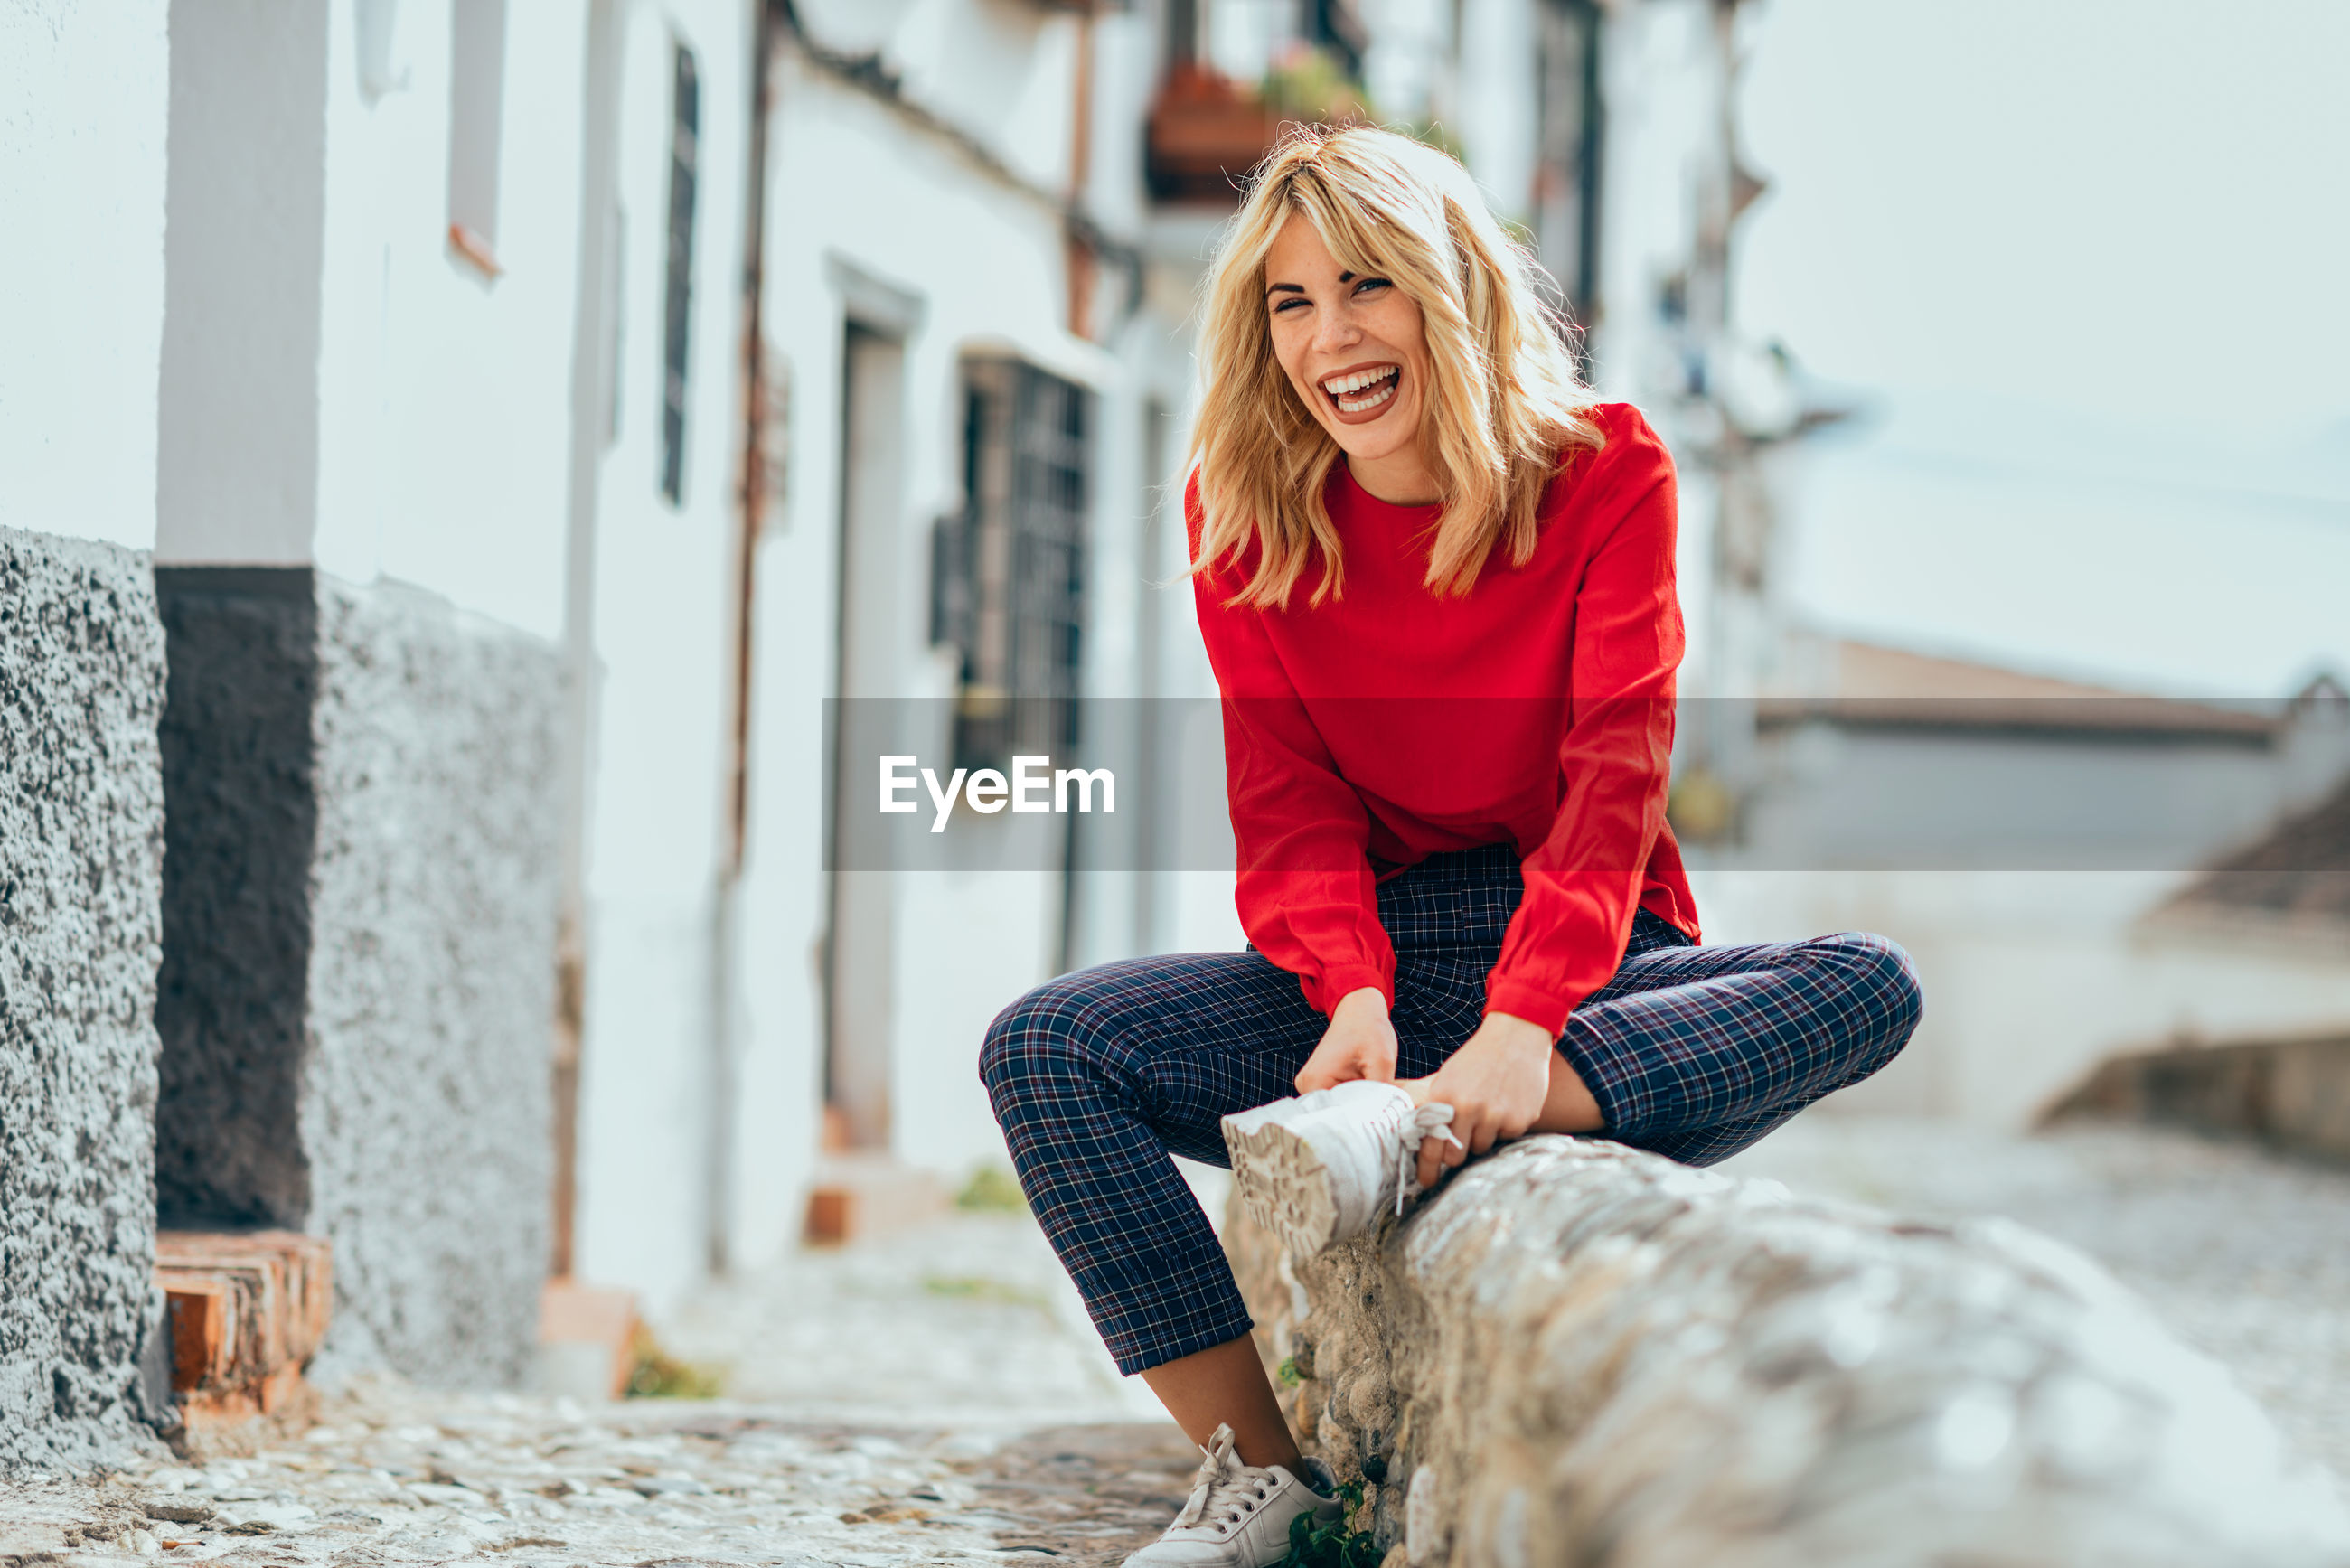 Happy young woman sitting on footpath by building in city